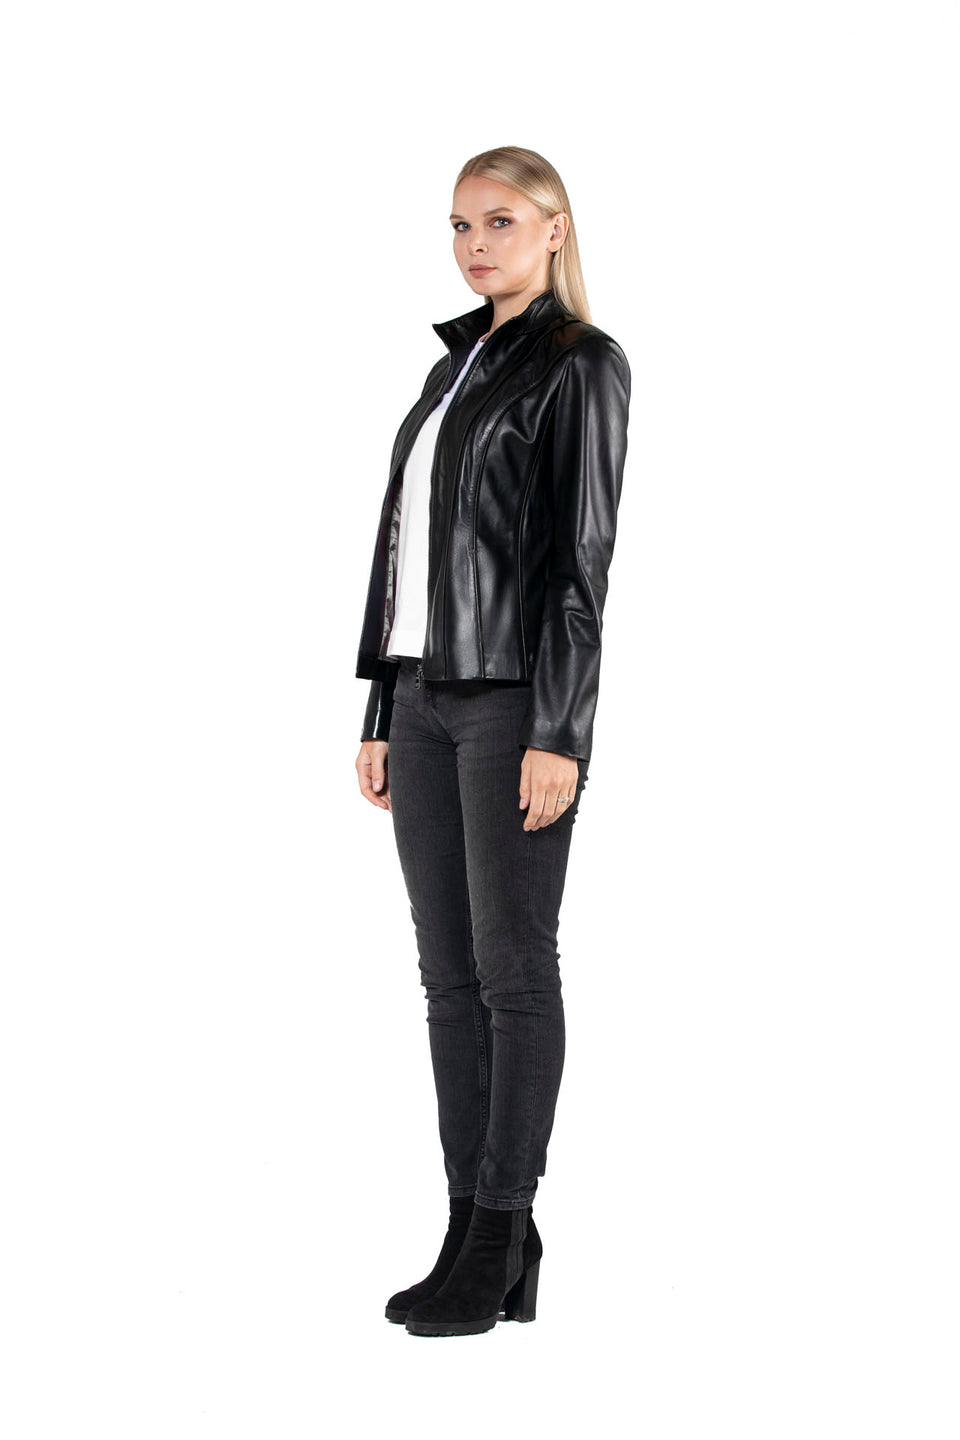 Darc - Women's Black Genuine Leather Jacket 2020